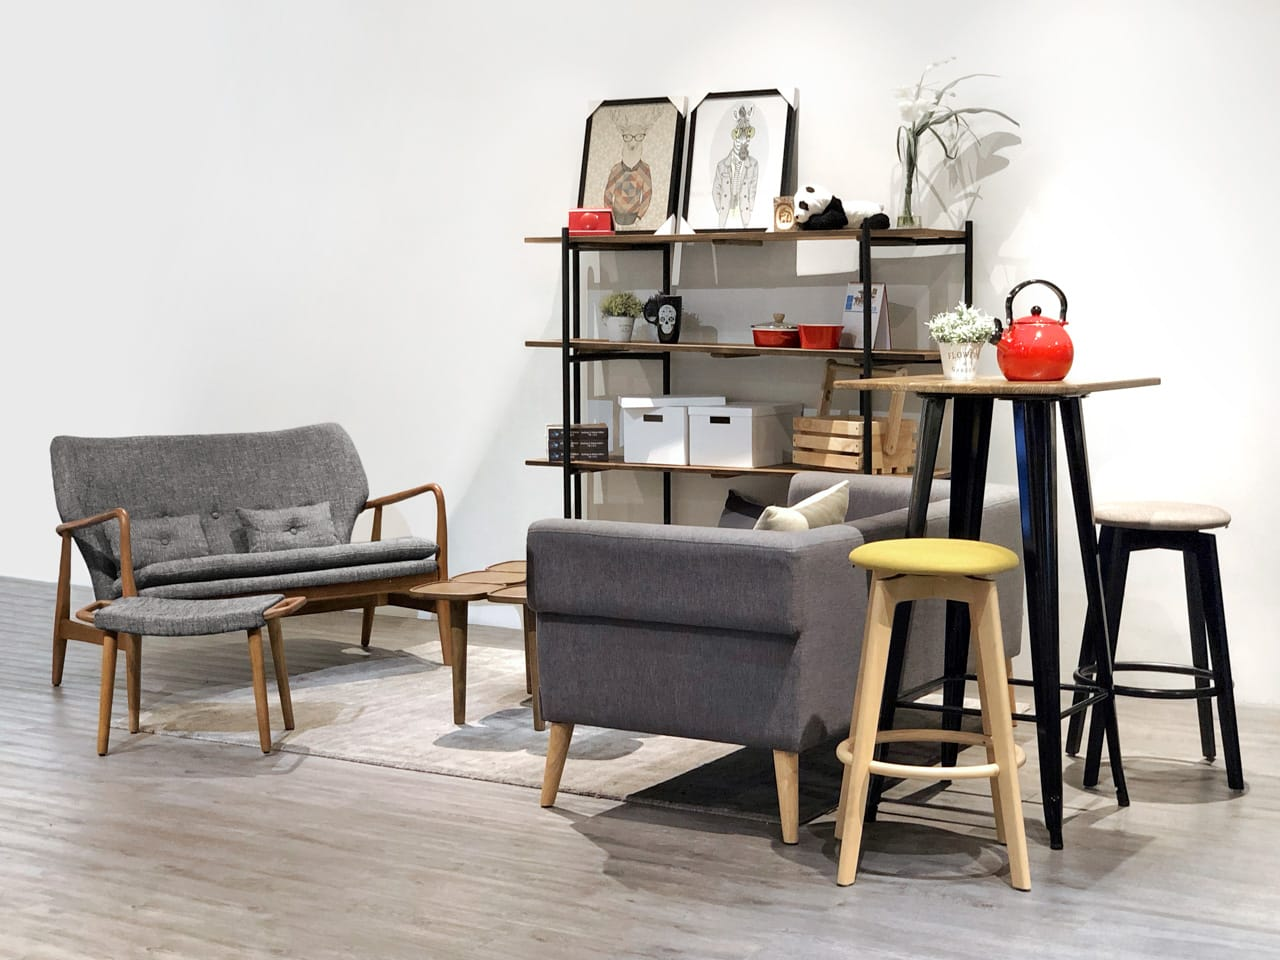 [Emma Sofa - 2 Seater, Emma Ottoman, Sonia 2.5 Seater Sofa, Genki 4-Tier Shelf, Dojo Bar Table & Obie Barstool]